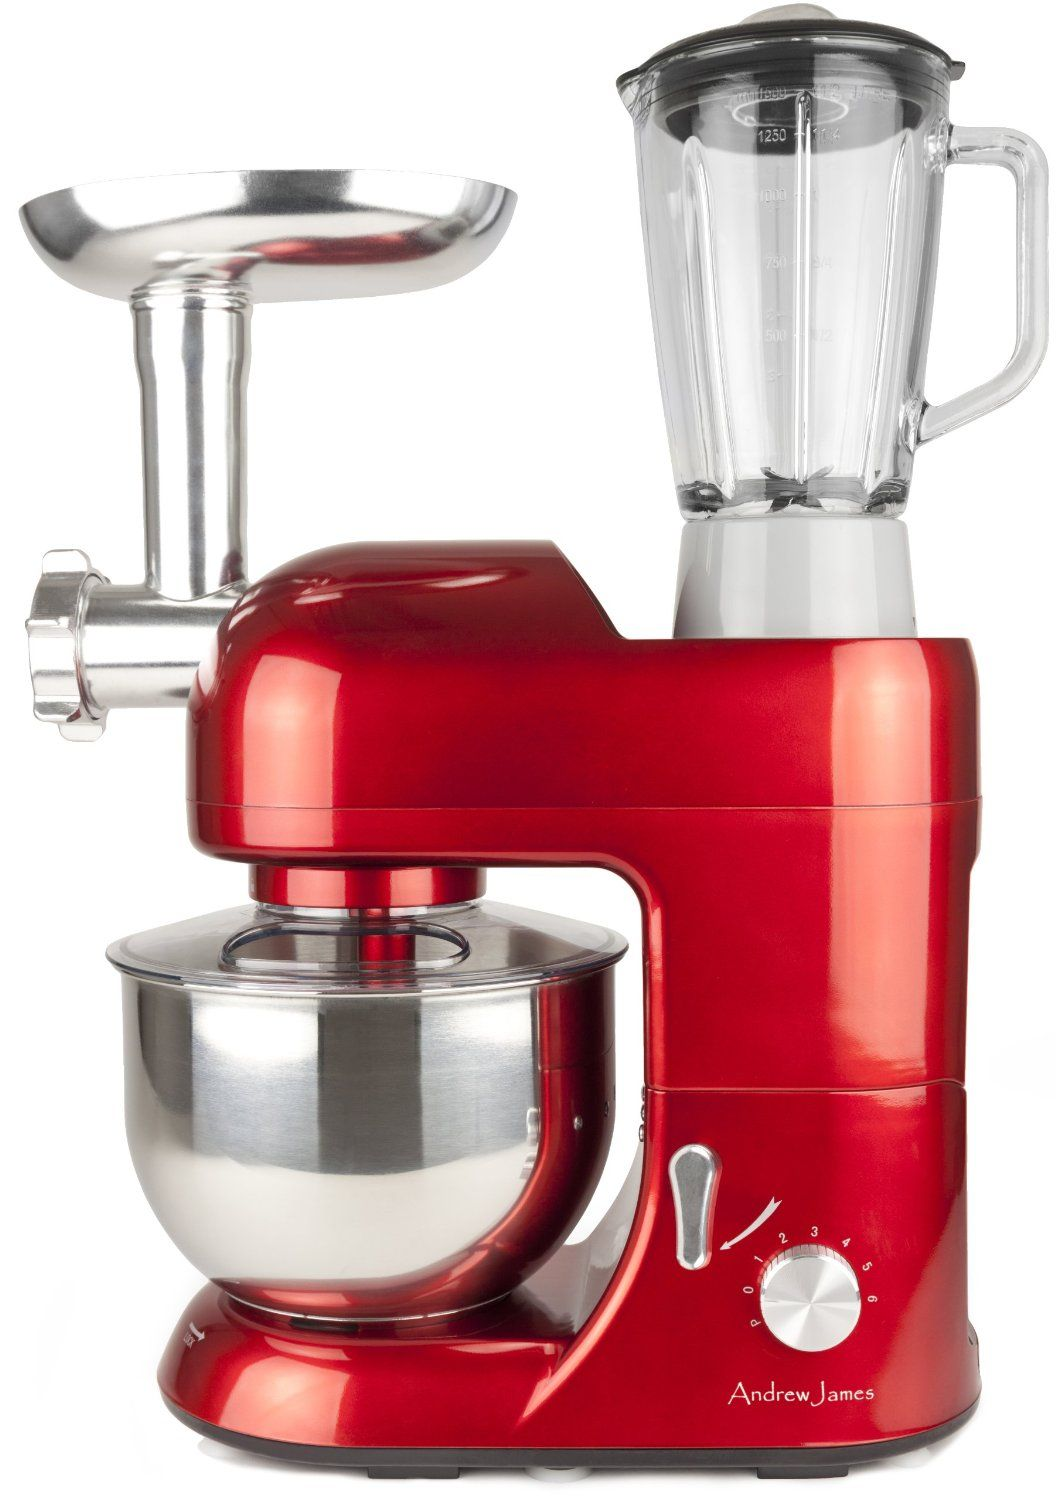 Andrew james multifunctional red 52 food mixer with meat grinder andrew james 1300 watt multifunctional red food mixer with 2 year warranty meat grinder and litre blender attachments recipe book forumfinder Gallery